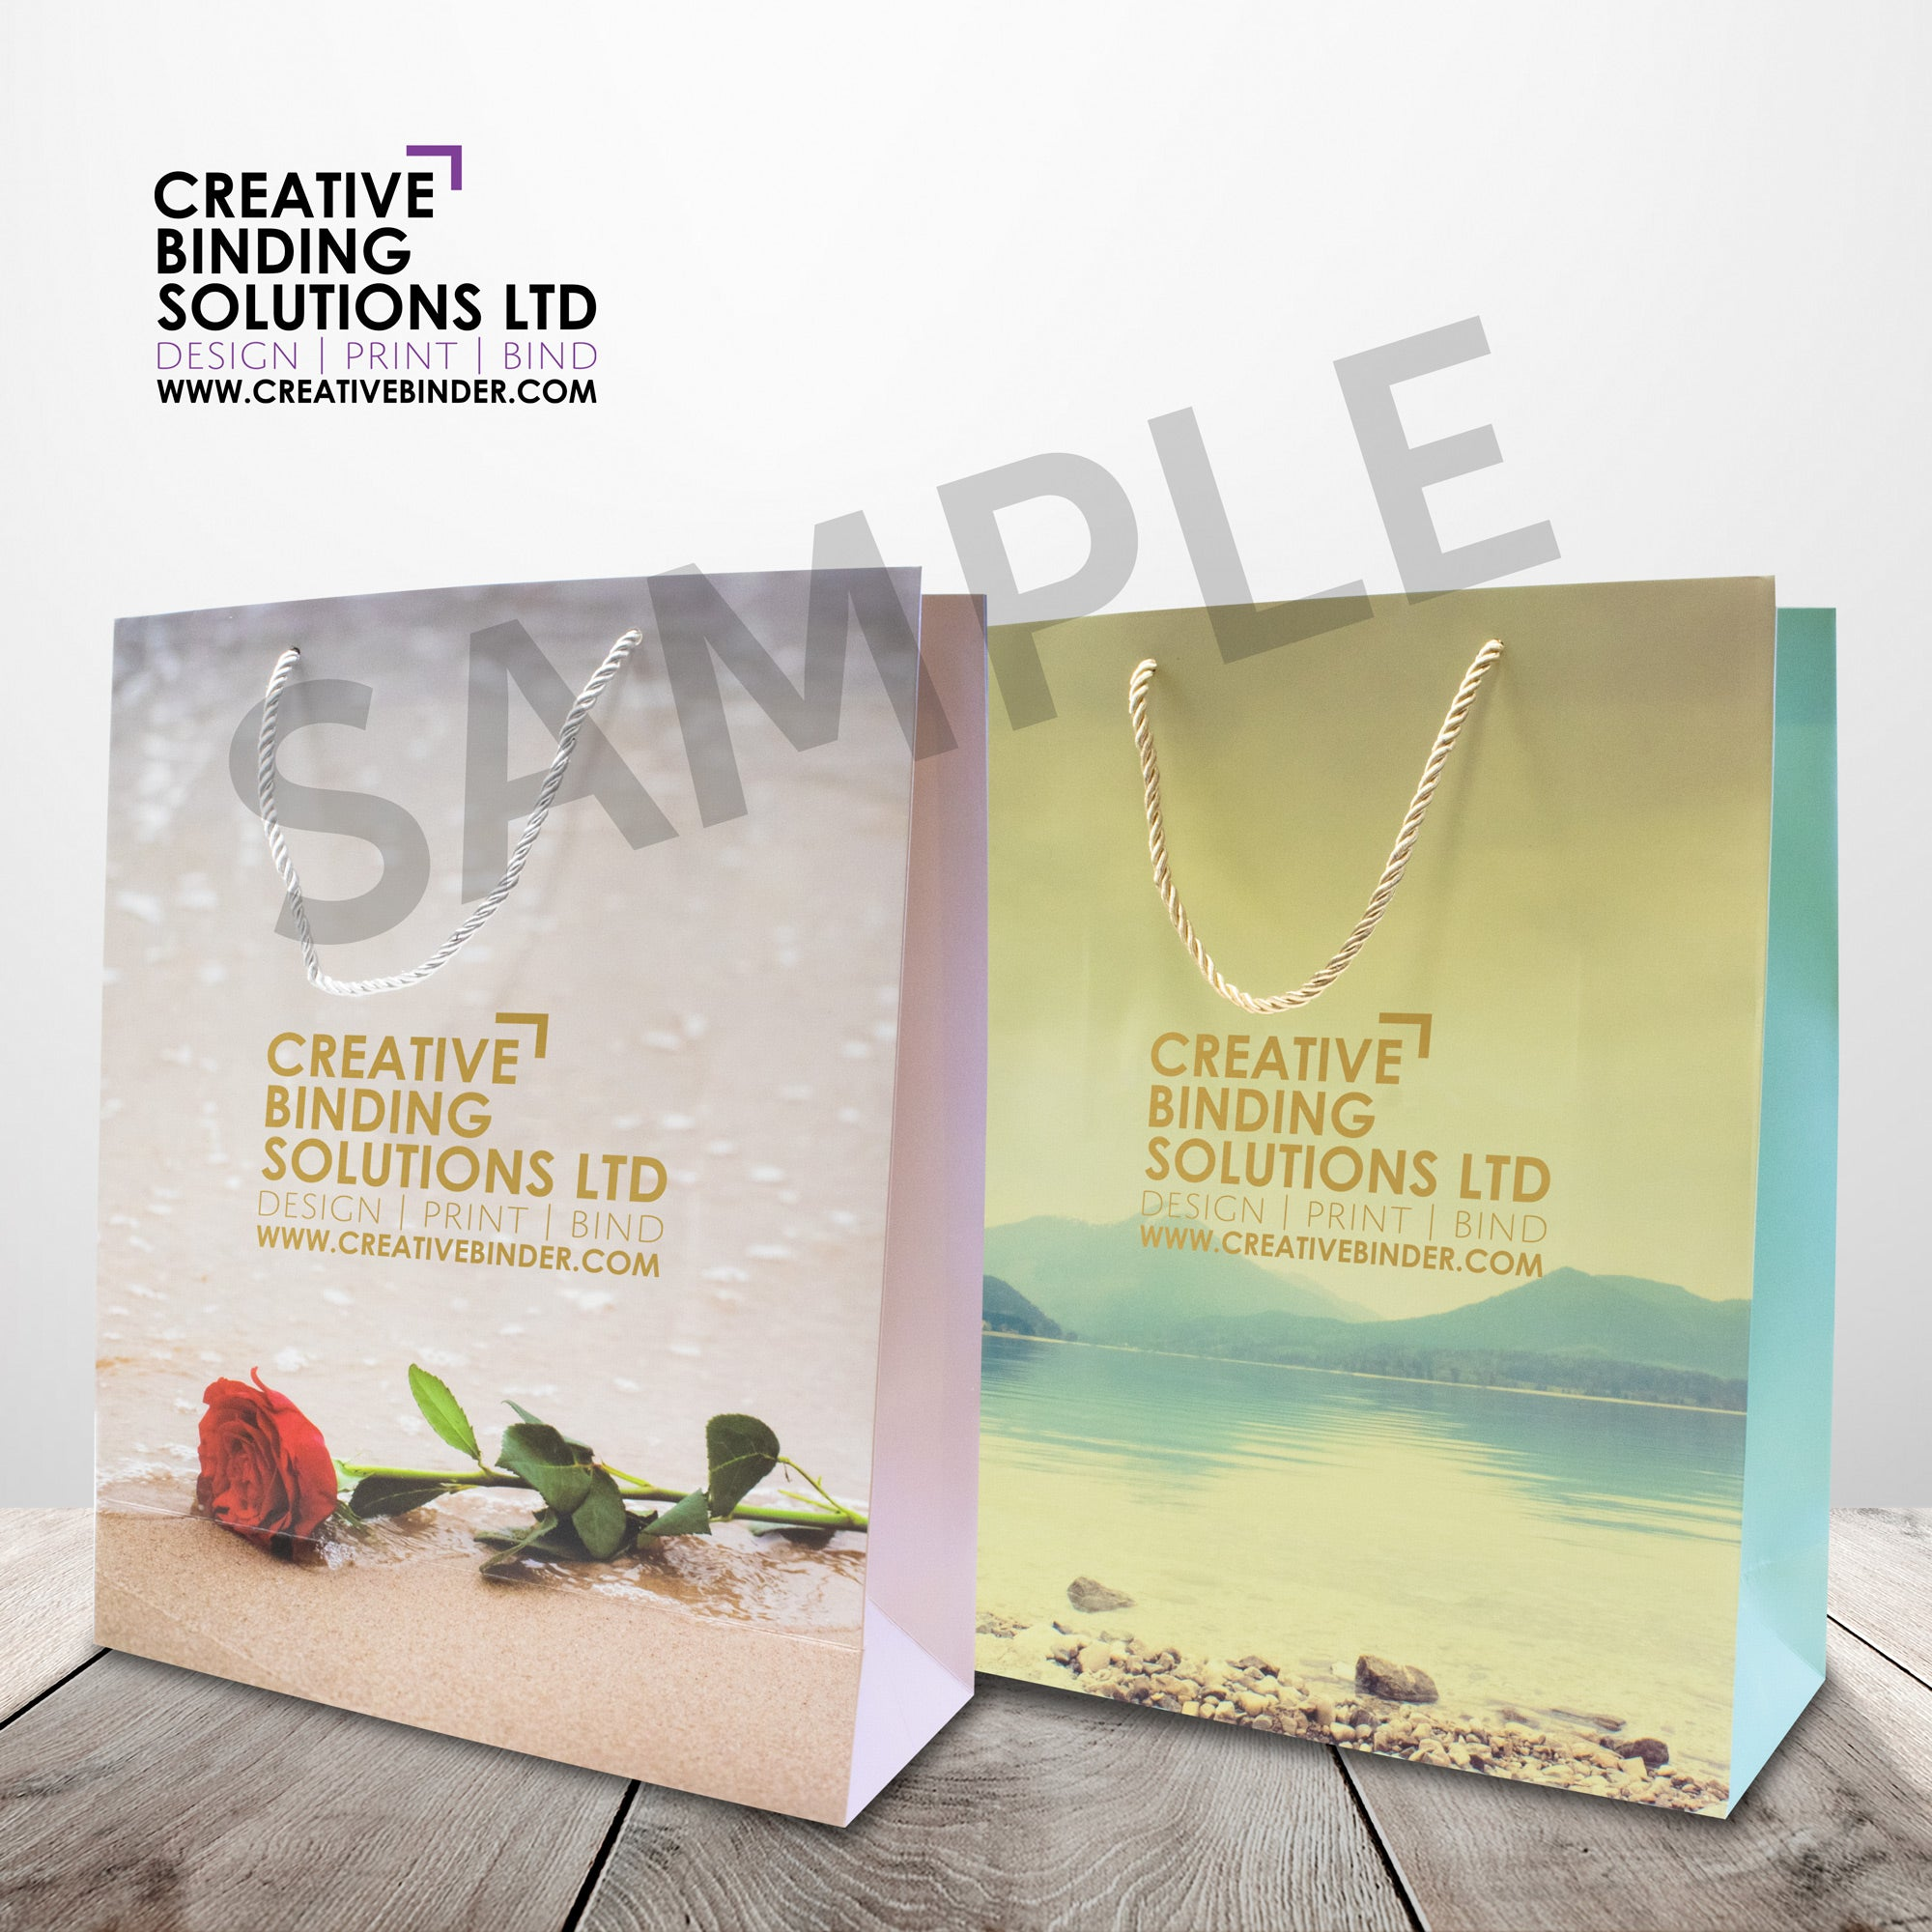 LARGE BRANDED AND PRINTED PAPER LUXURY BAGS